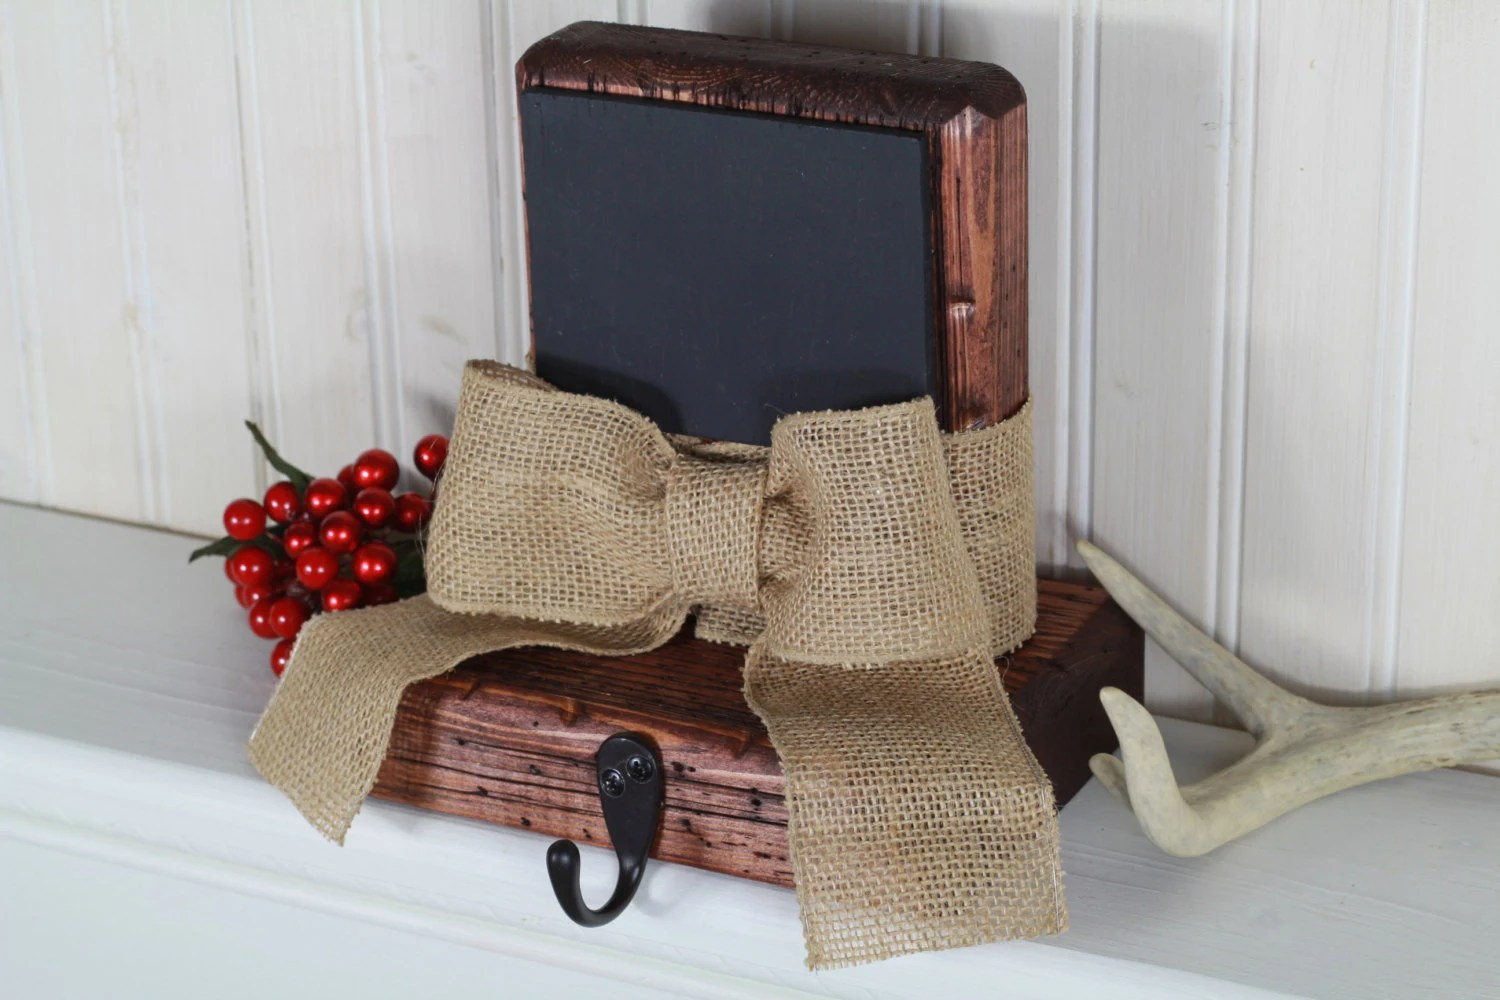 Home Accents Rustic Stocking Holder